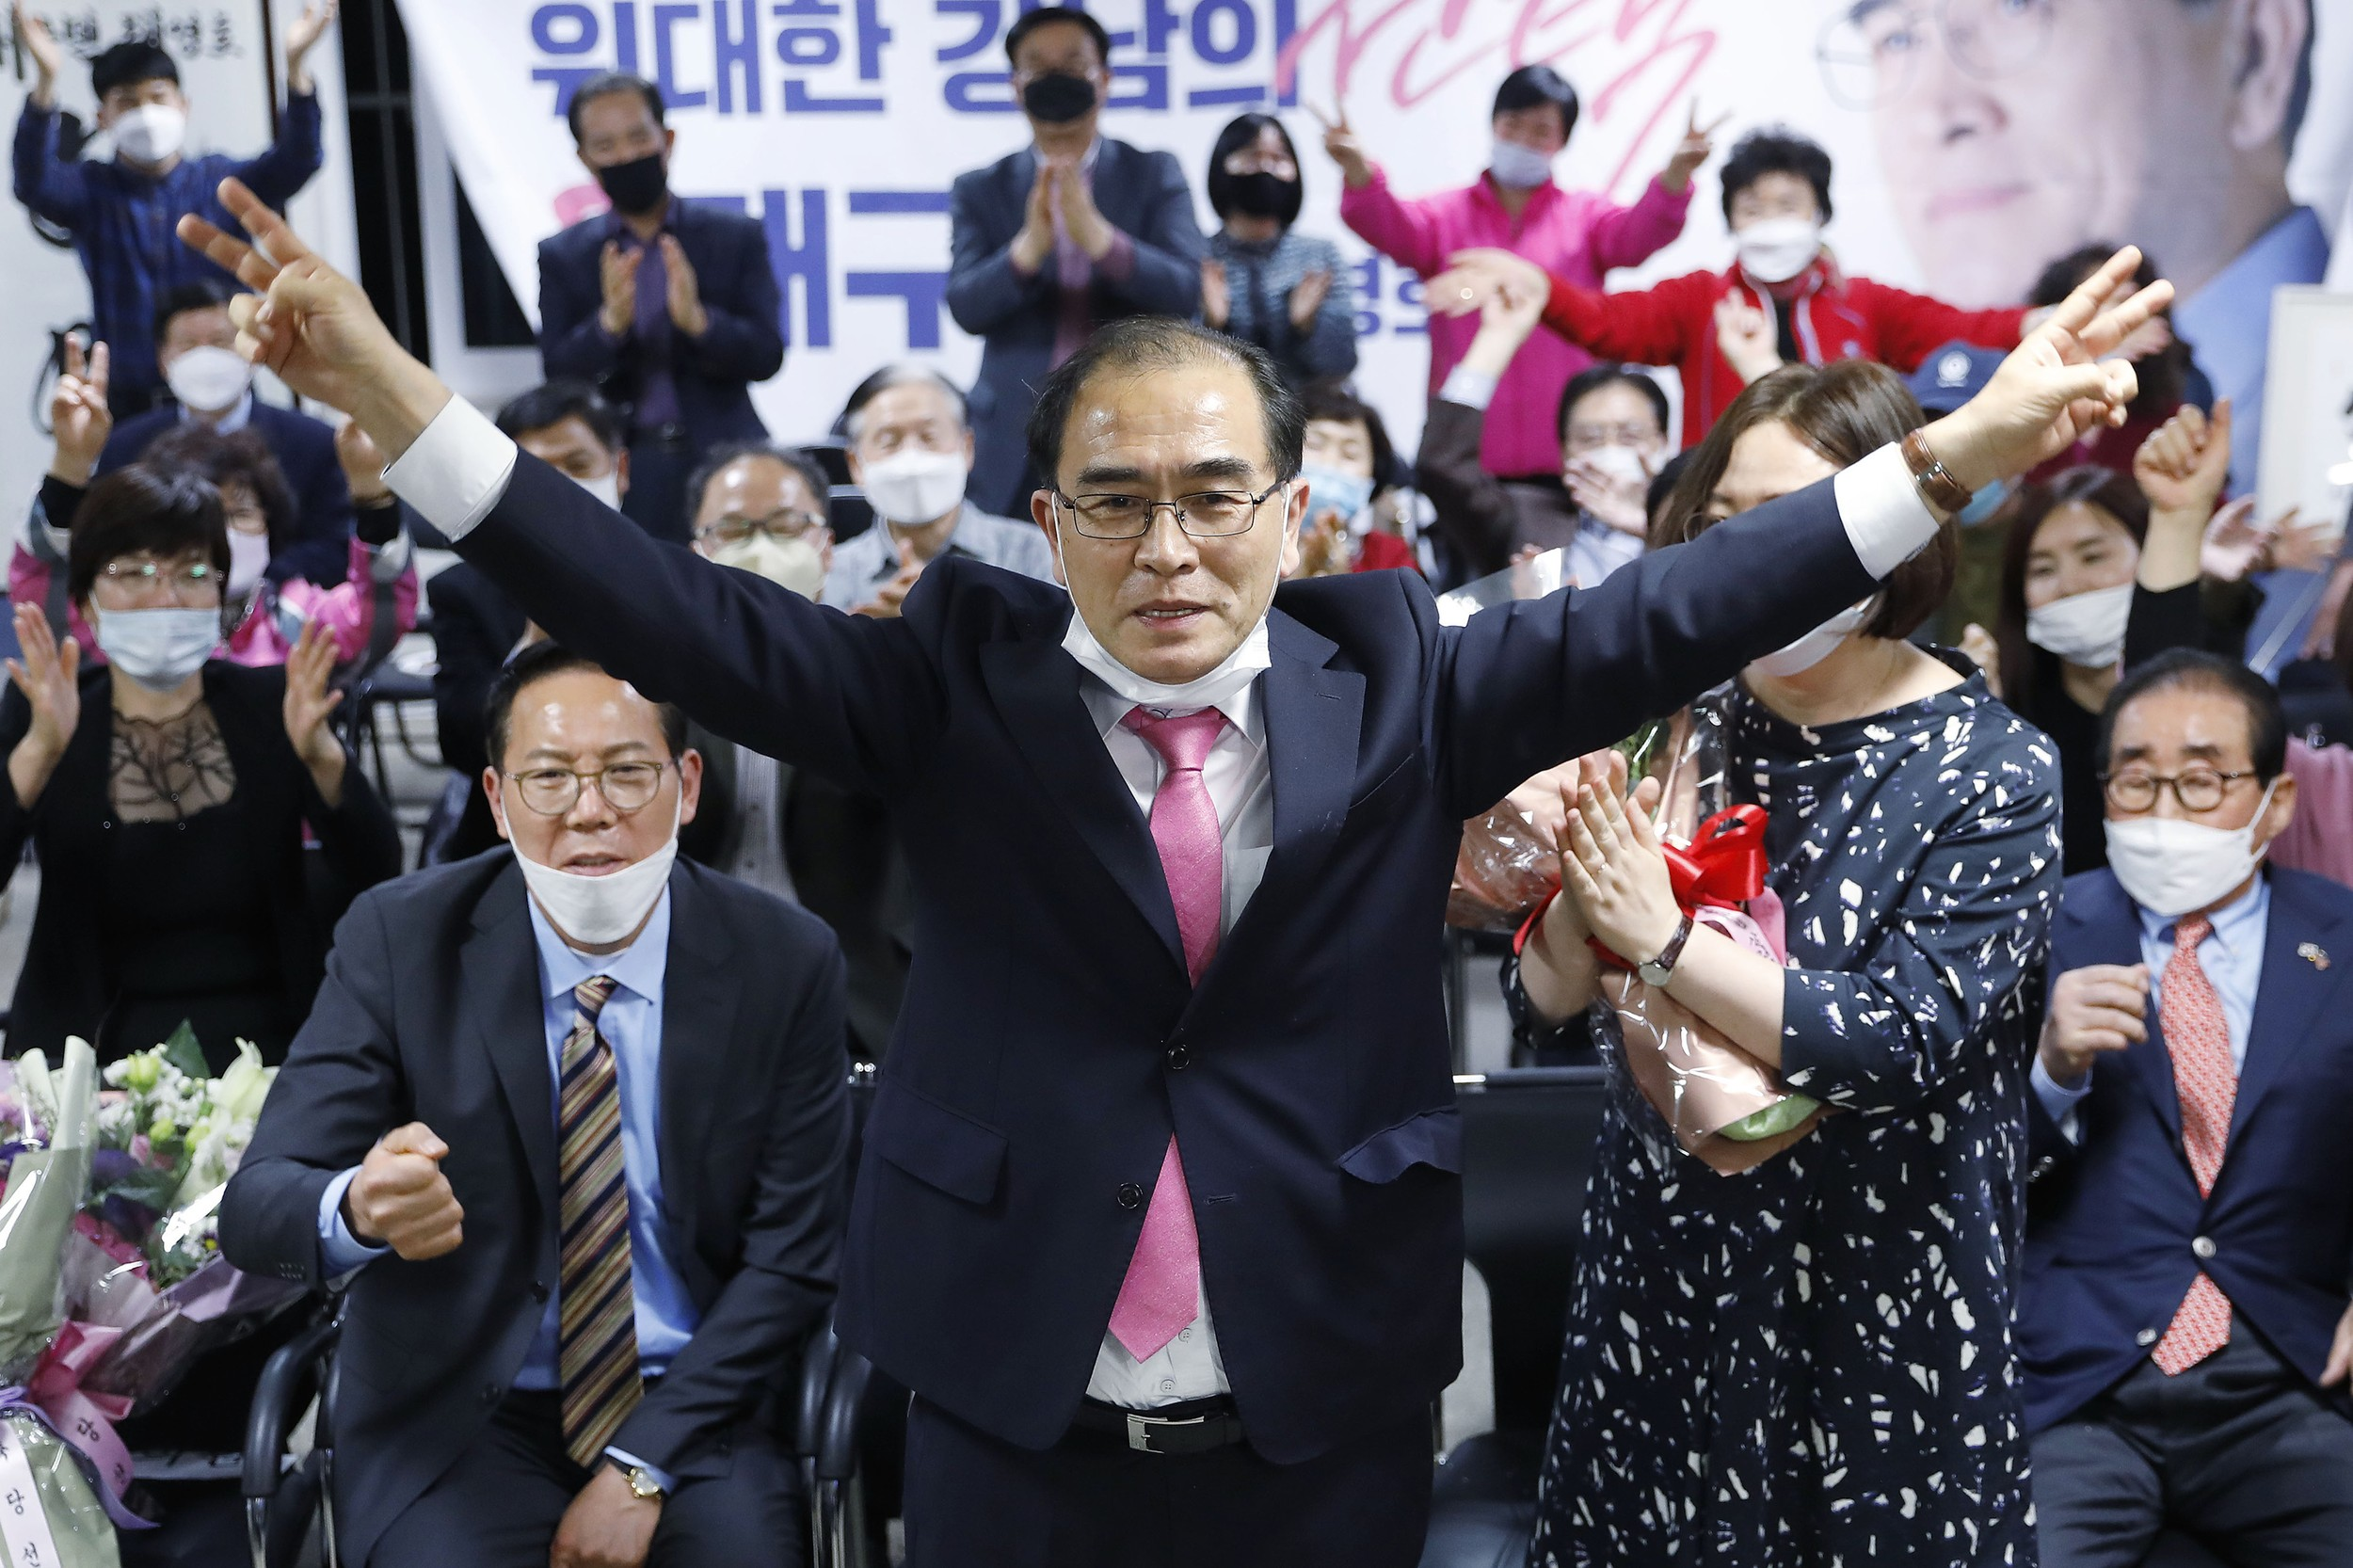 Thae Yong Ho, center, former North Korean diplomat, who defected to South Korea in 2016 and a candidate of the main opposition United Future Party, reacts after he was certain to secure victory in the parliamentary election in Seoul, South Korea, Thursday, April 16, 2020.